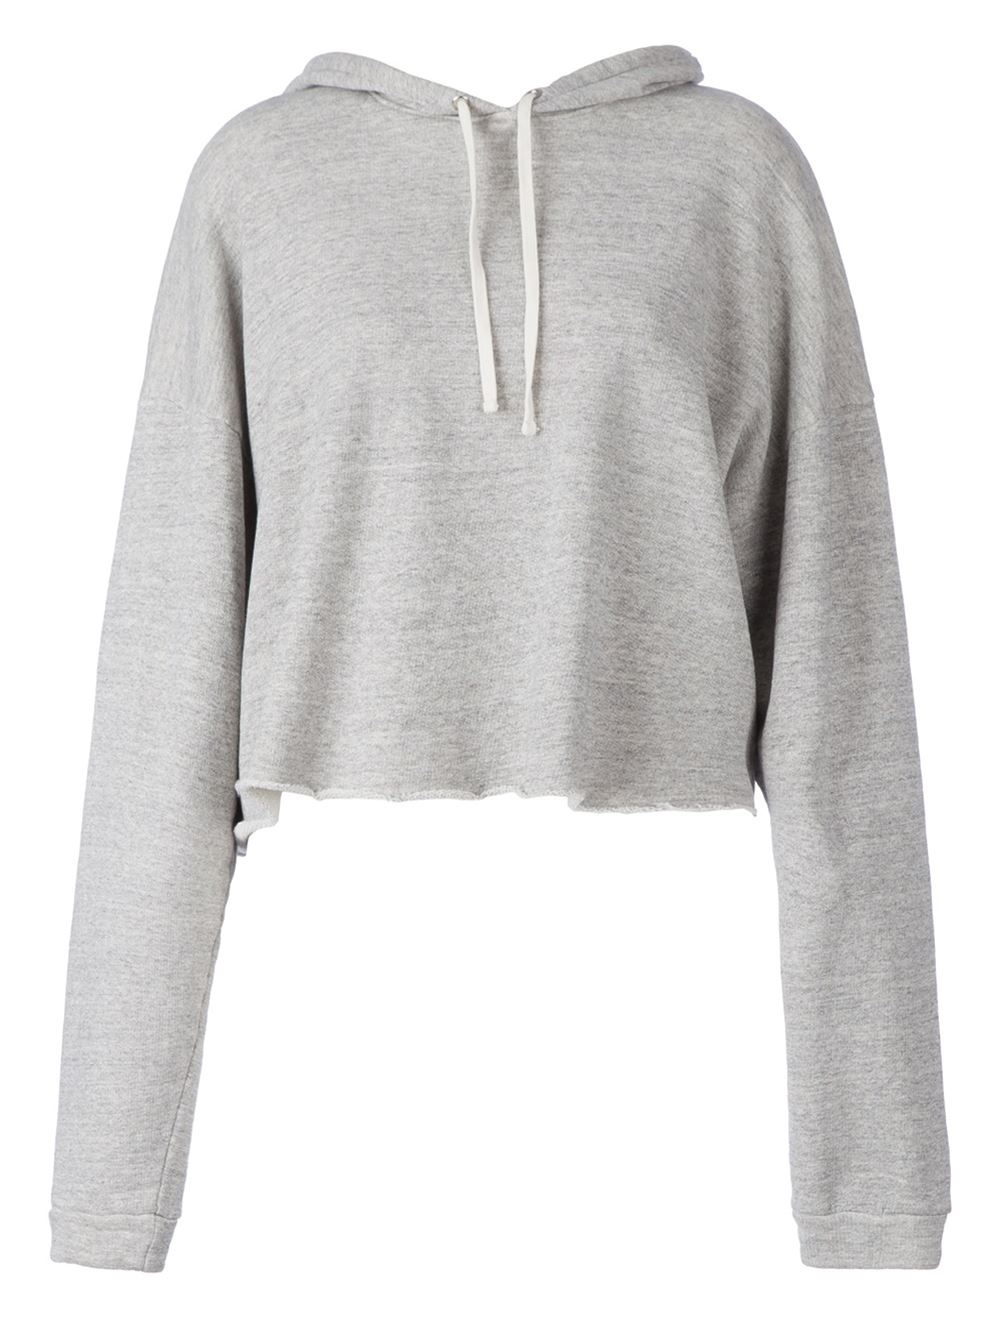 Sweater Hoodie Gap Faith Connexion Cropped Hoodie In Gray Grey Lyst